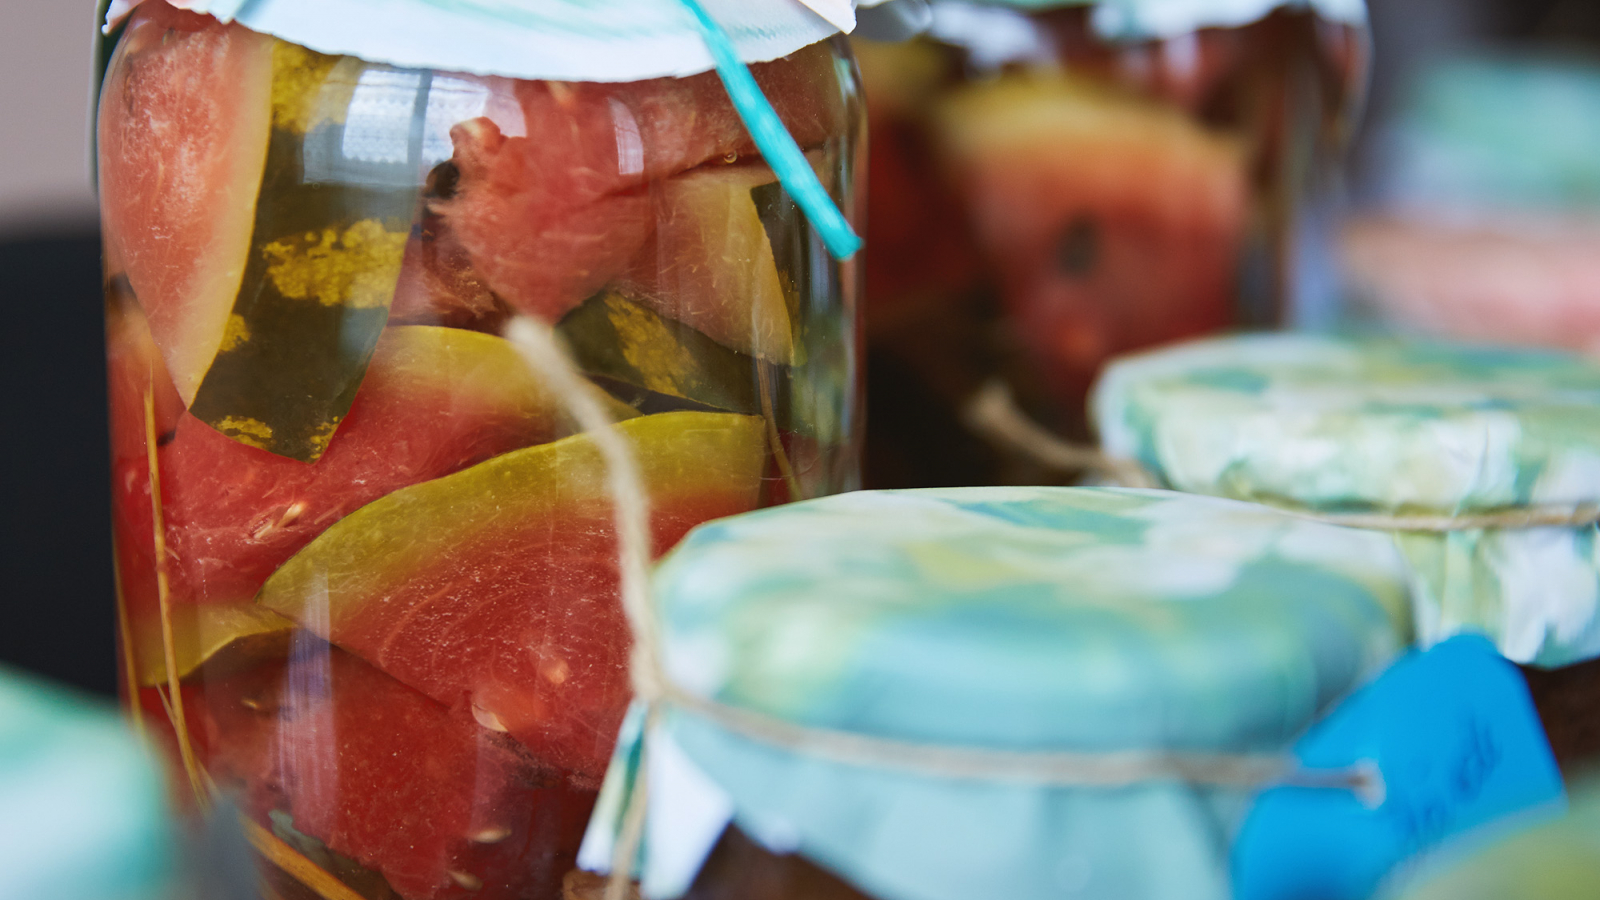 Alina Daraban produces melon and watermelon preserves, as well as jams, juices and salads